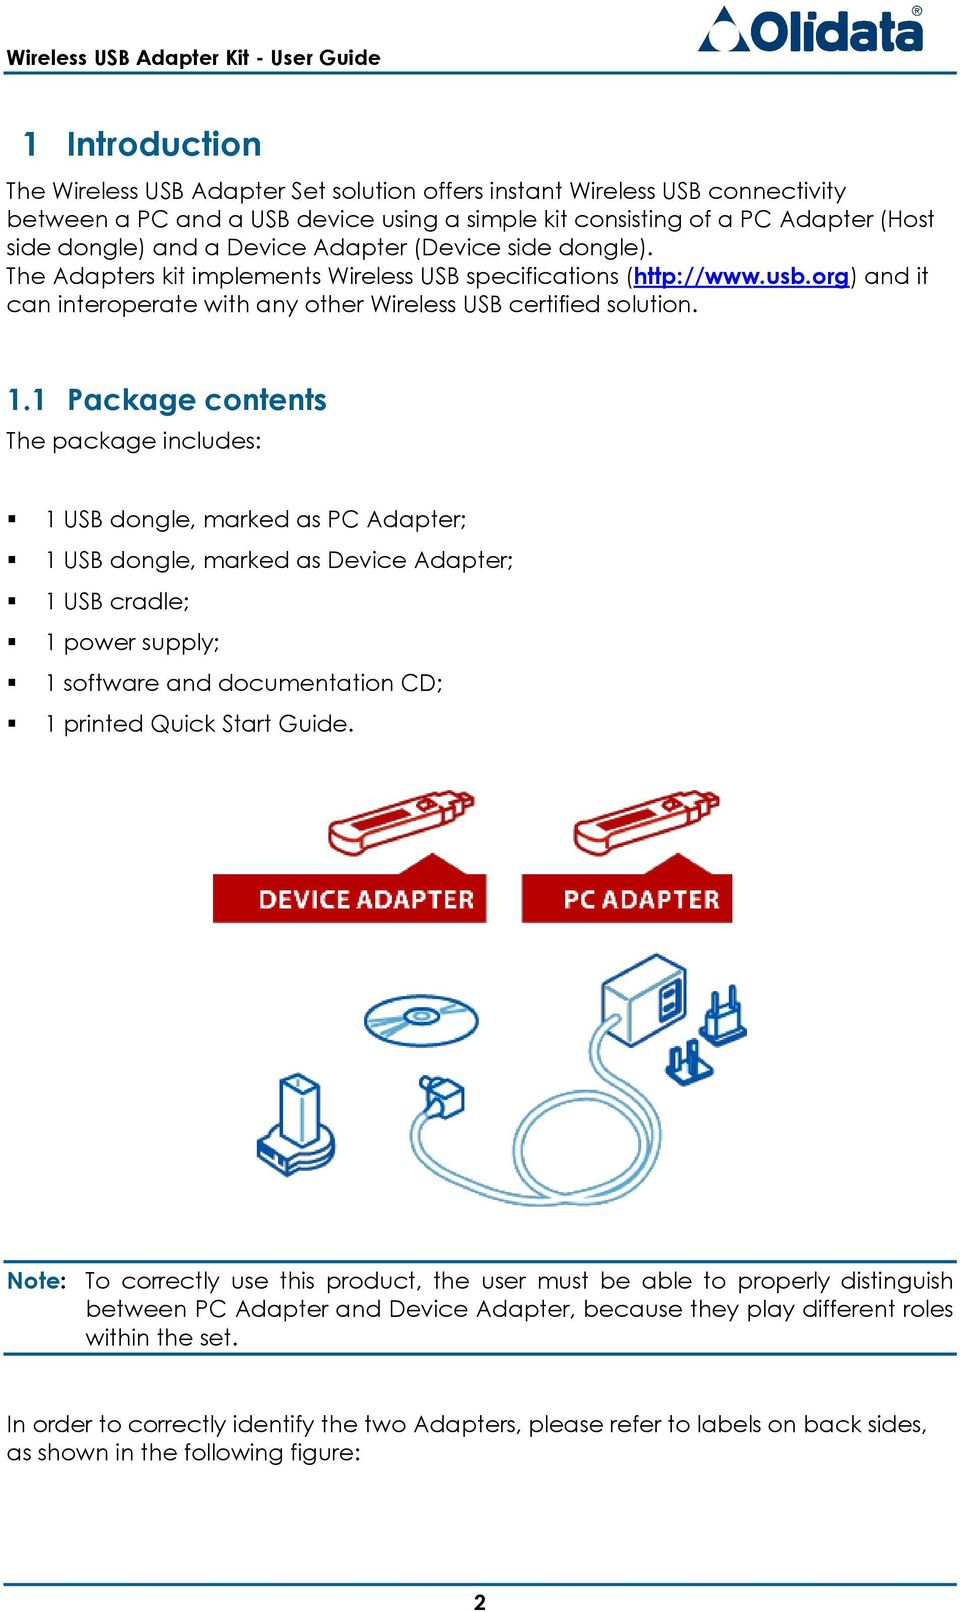 1 Package contents The package includes: 1 USB dongle, marked as PC Adapter; 1 USB dongle, marked as Device Adapter; 1 USB cradle; 1 power supply; 1 software and documentation CD; 1 printed Quick